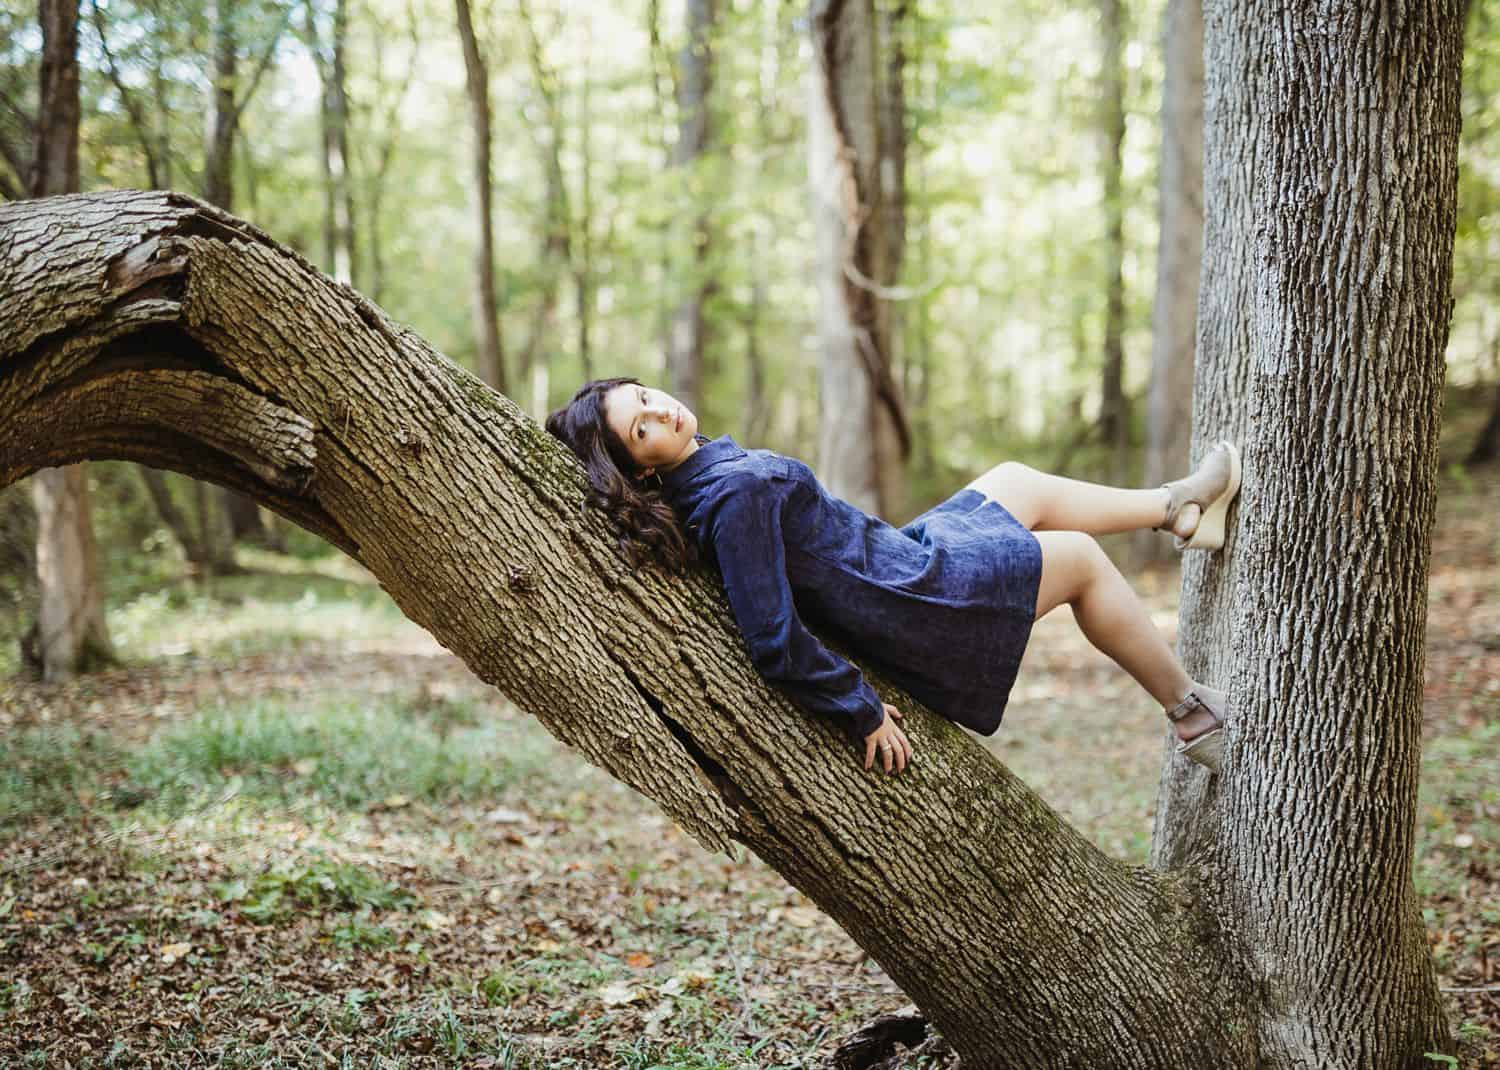 A high school senior girl lies in the fork of a tree wearing a denim dress and no shoes